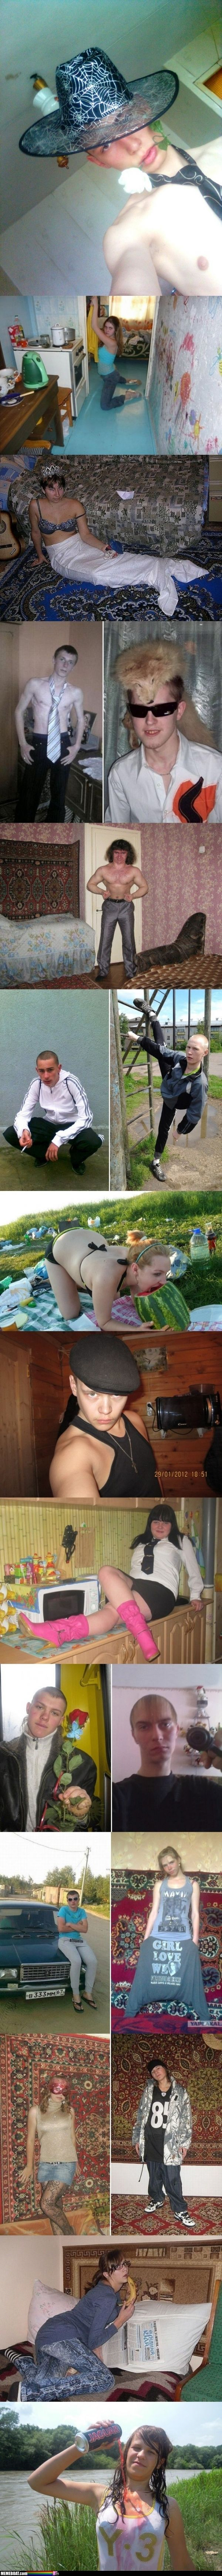 19 Pictures From Russian Dating Sites. These are so funny! I perfectly understand, simply by looking at the photos, why they are probably having a hard time getting a date.